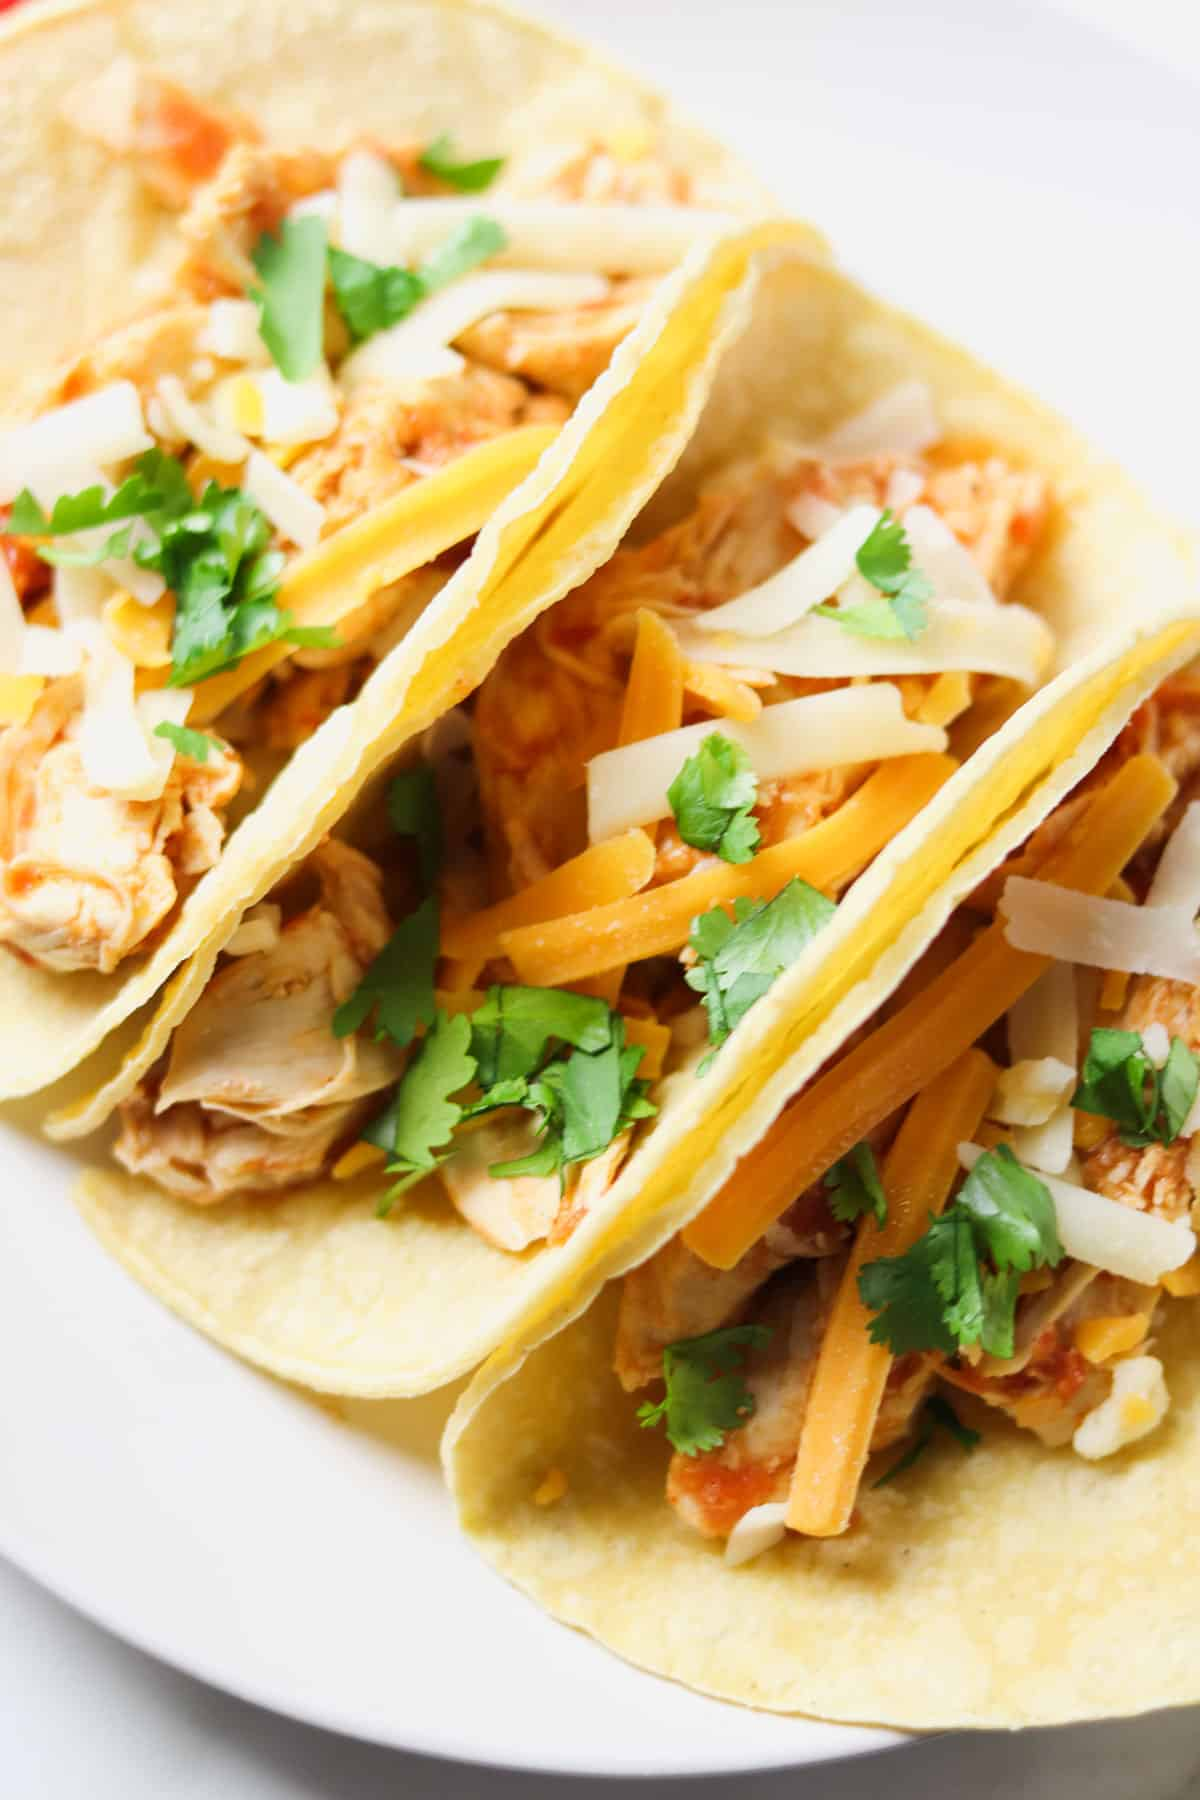 three shredded chicken tacos on white plate